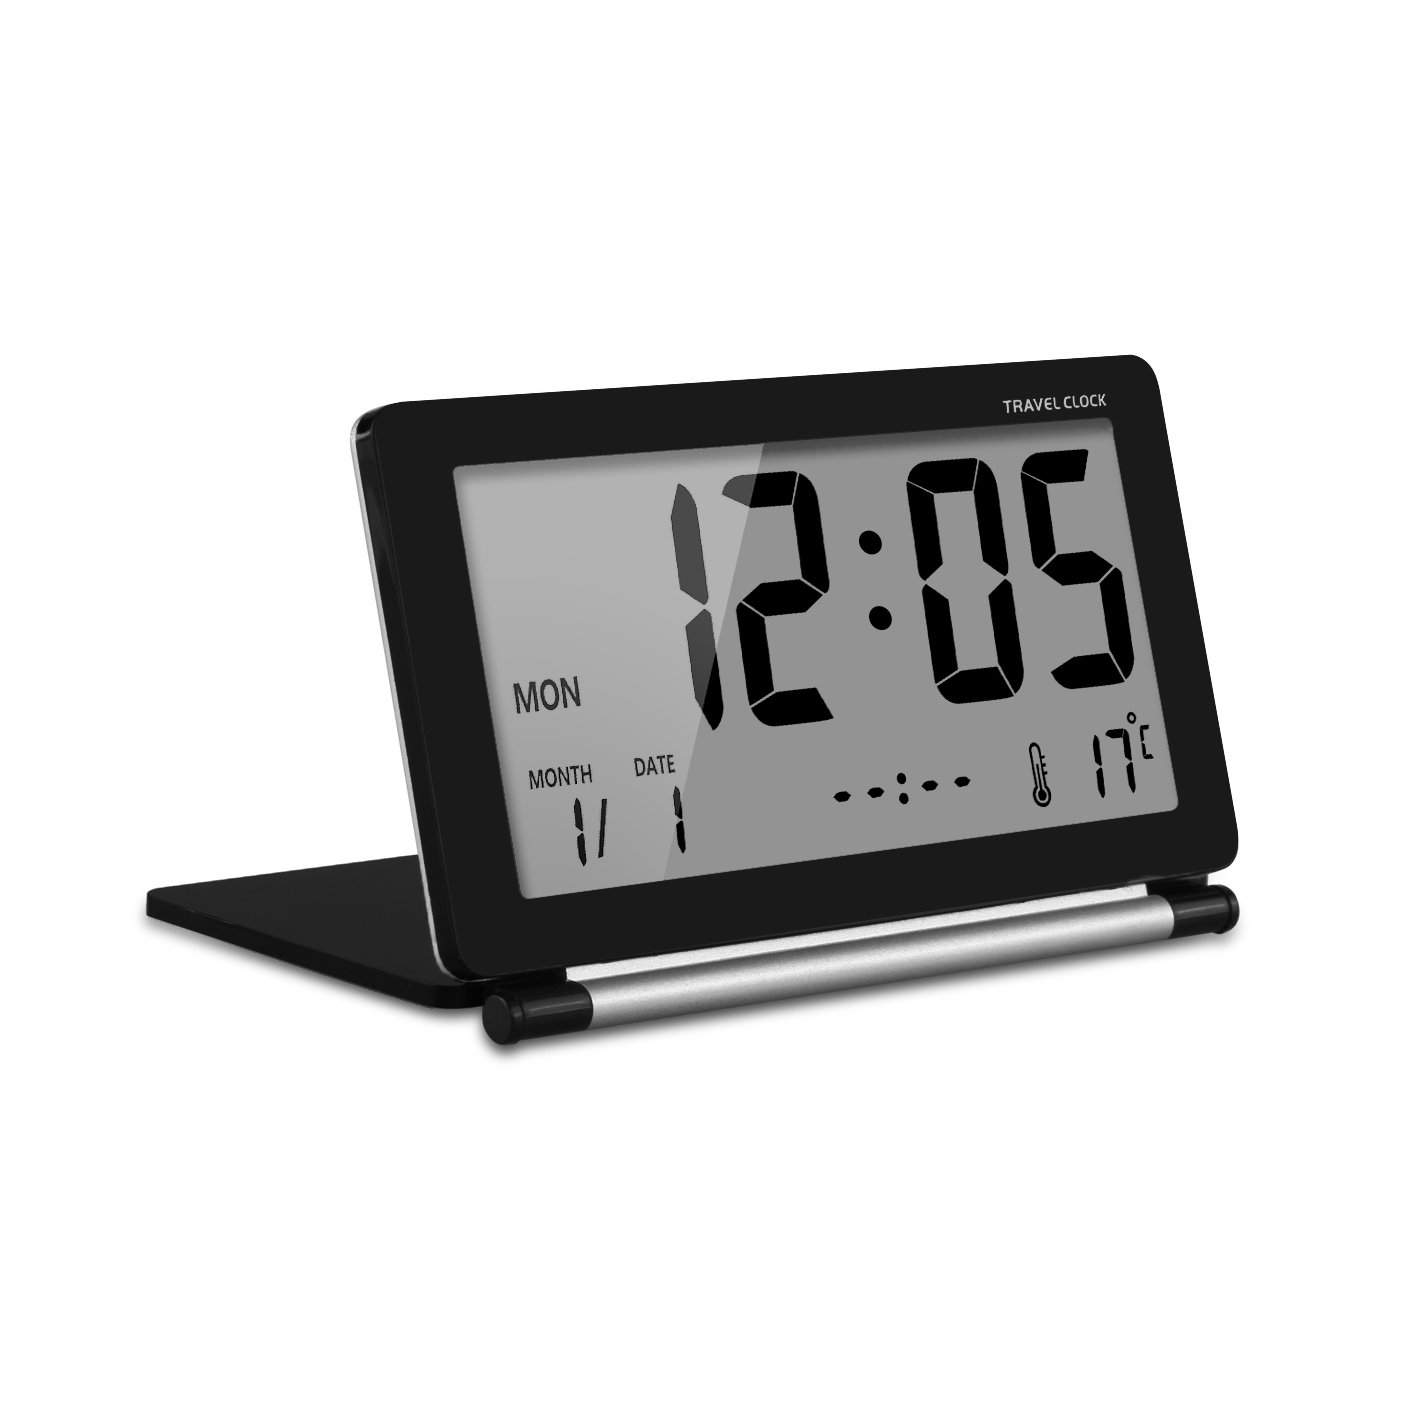 White CEEBON Travel Clock Folding Mini Silent Desk Travel Electronic Digital Alarm Clock/With Temperature Calendar Week Repeating Snooze and Big LCD Digital Screen for Home Office Travel